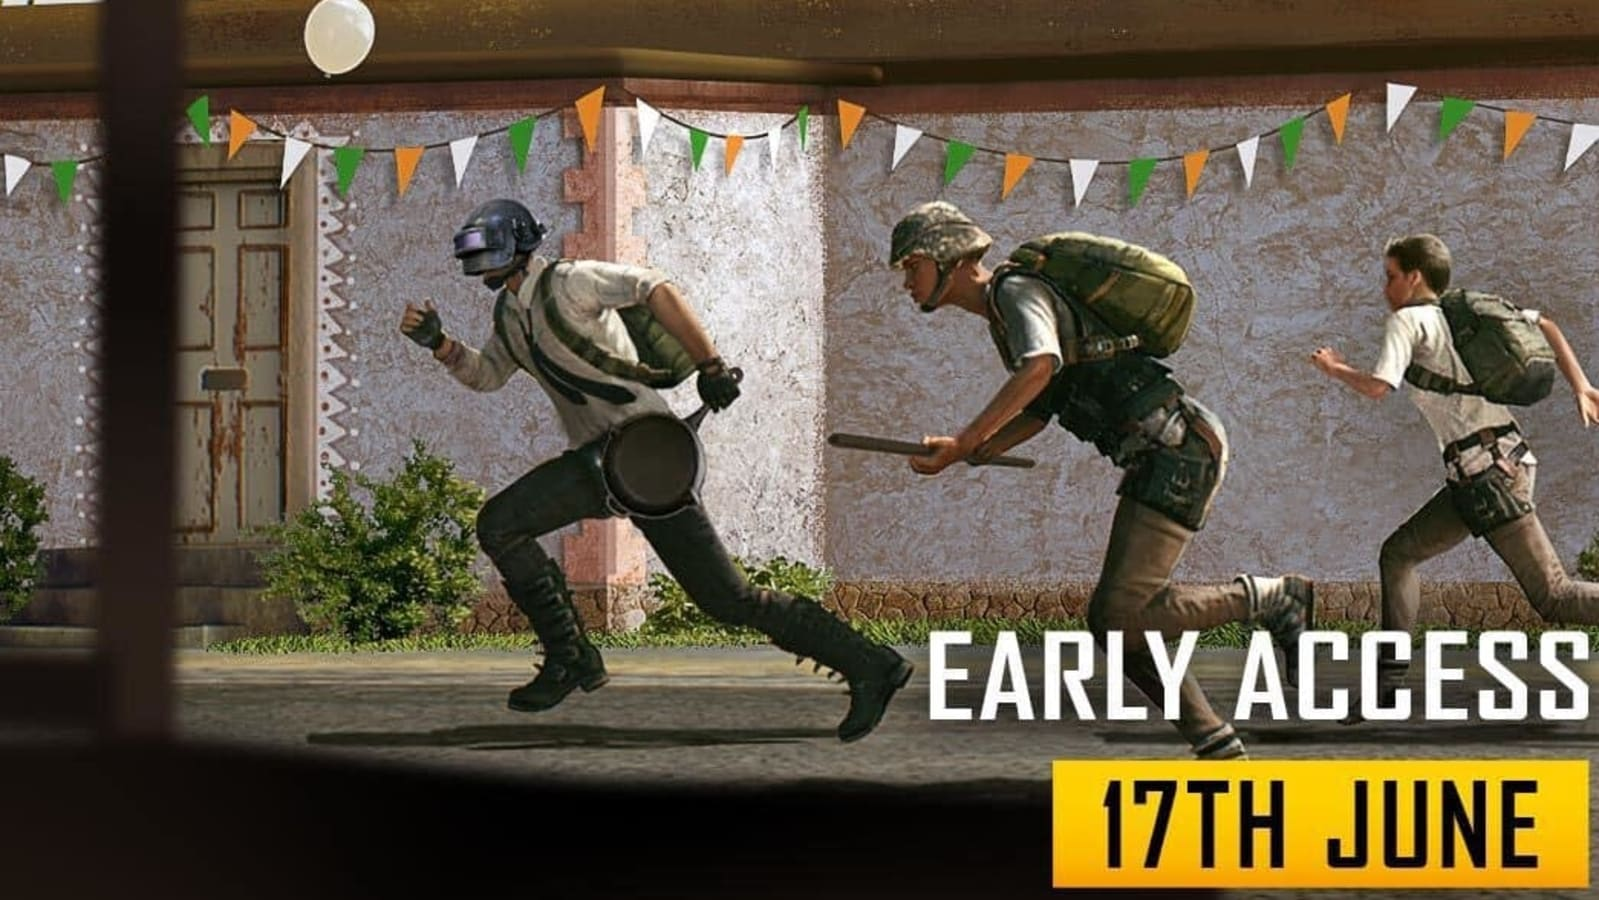 Battlegrounds Mobile India: From installation to the problem of downloading PUBG comparisons, find out everything in 6 points